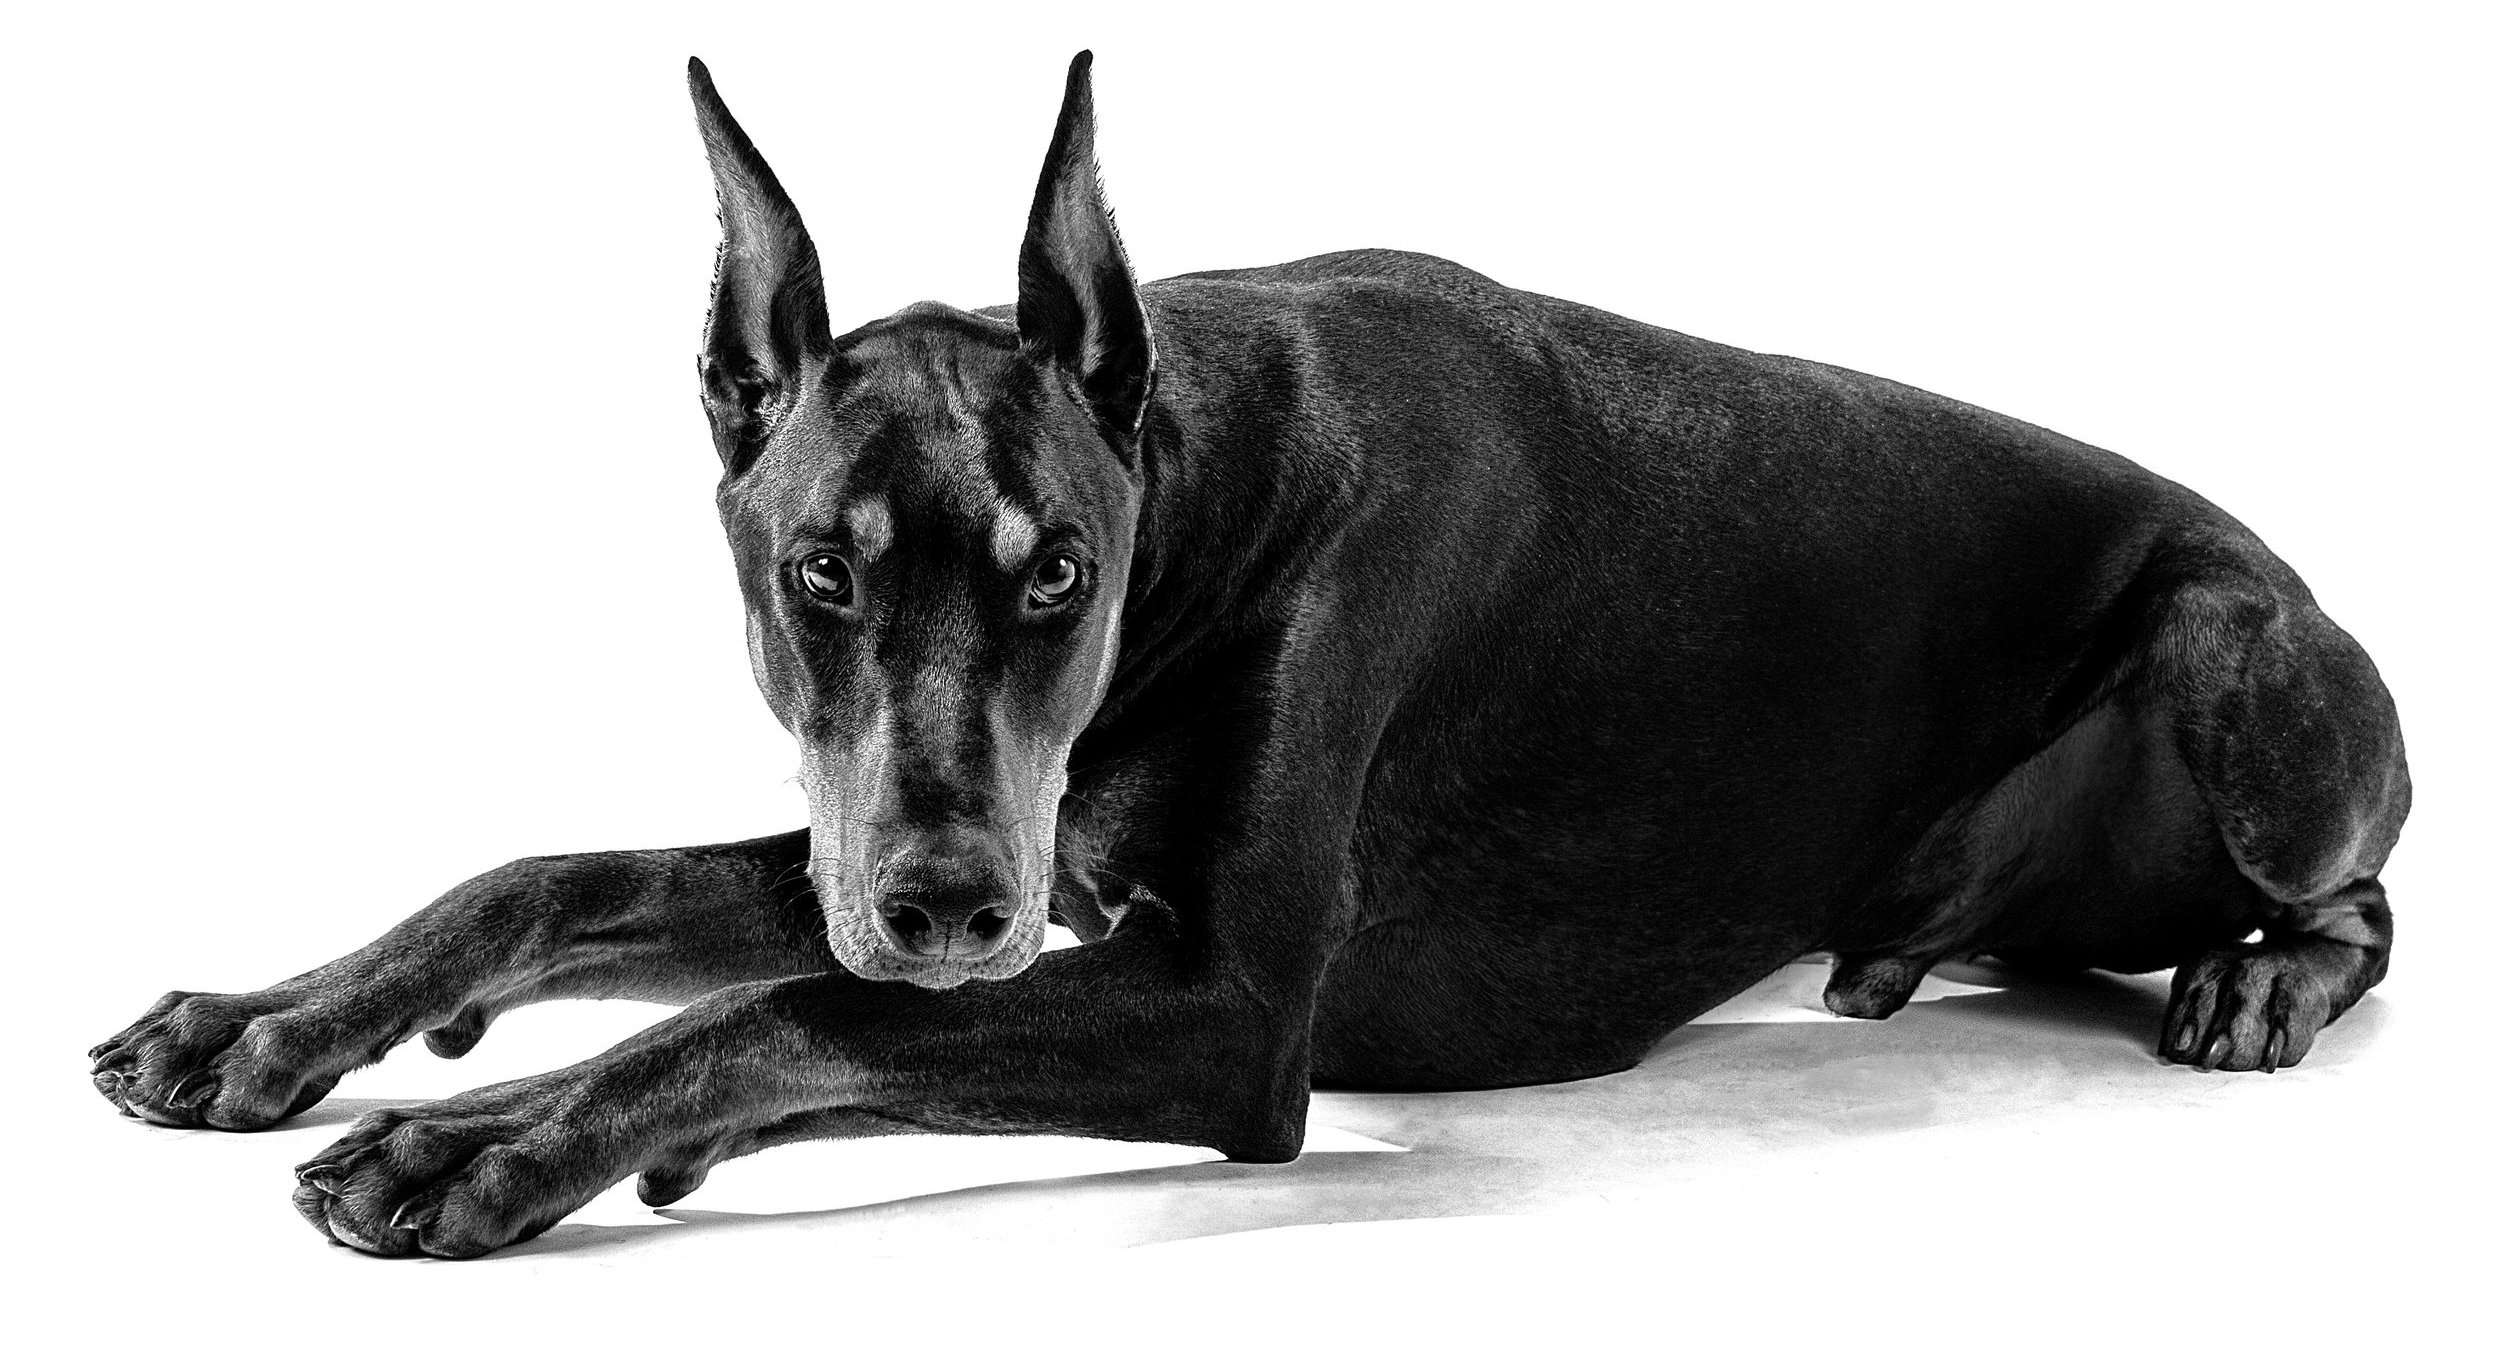 Black and White Image of a Doberman Dog by Mississauga Pet Photographer. Brampton, ON.